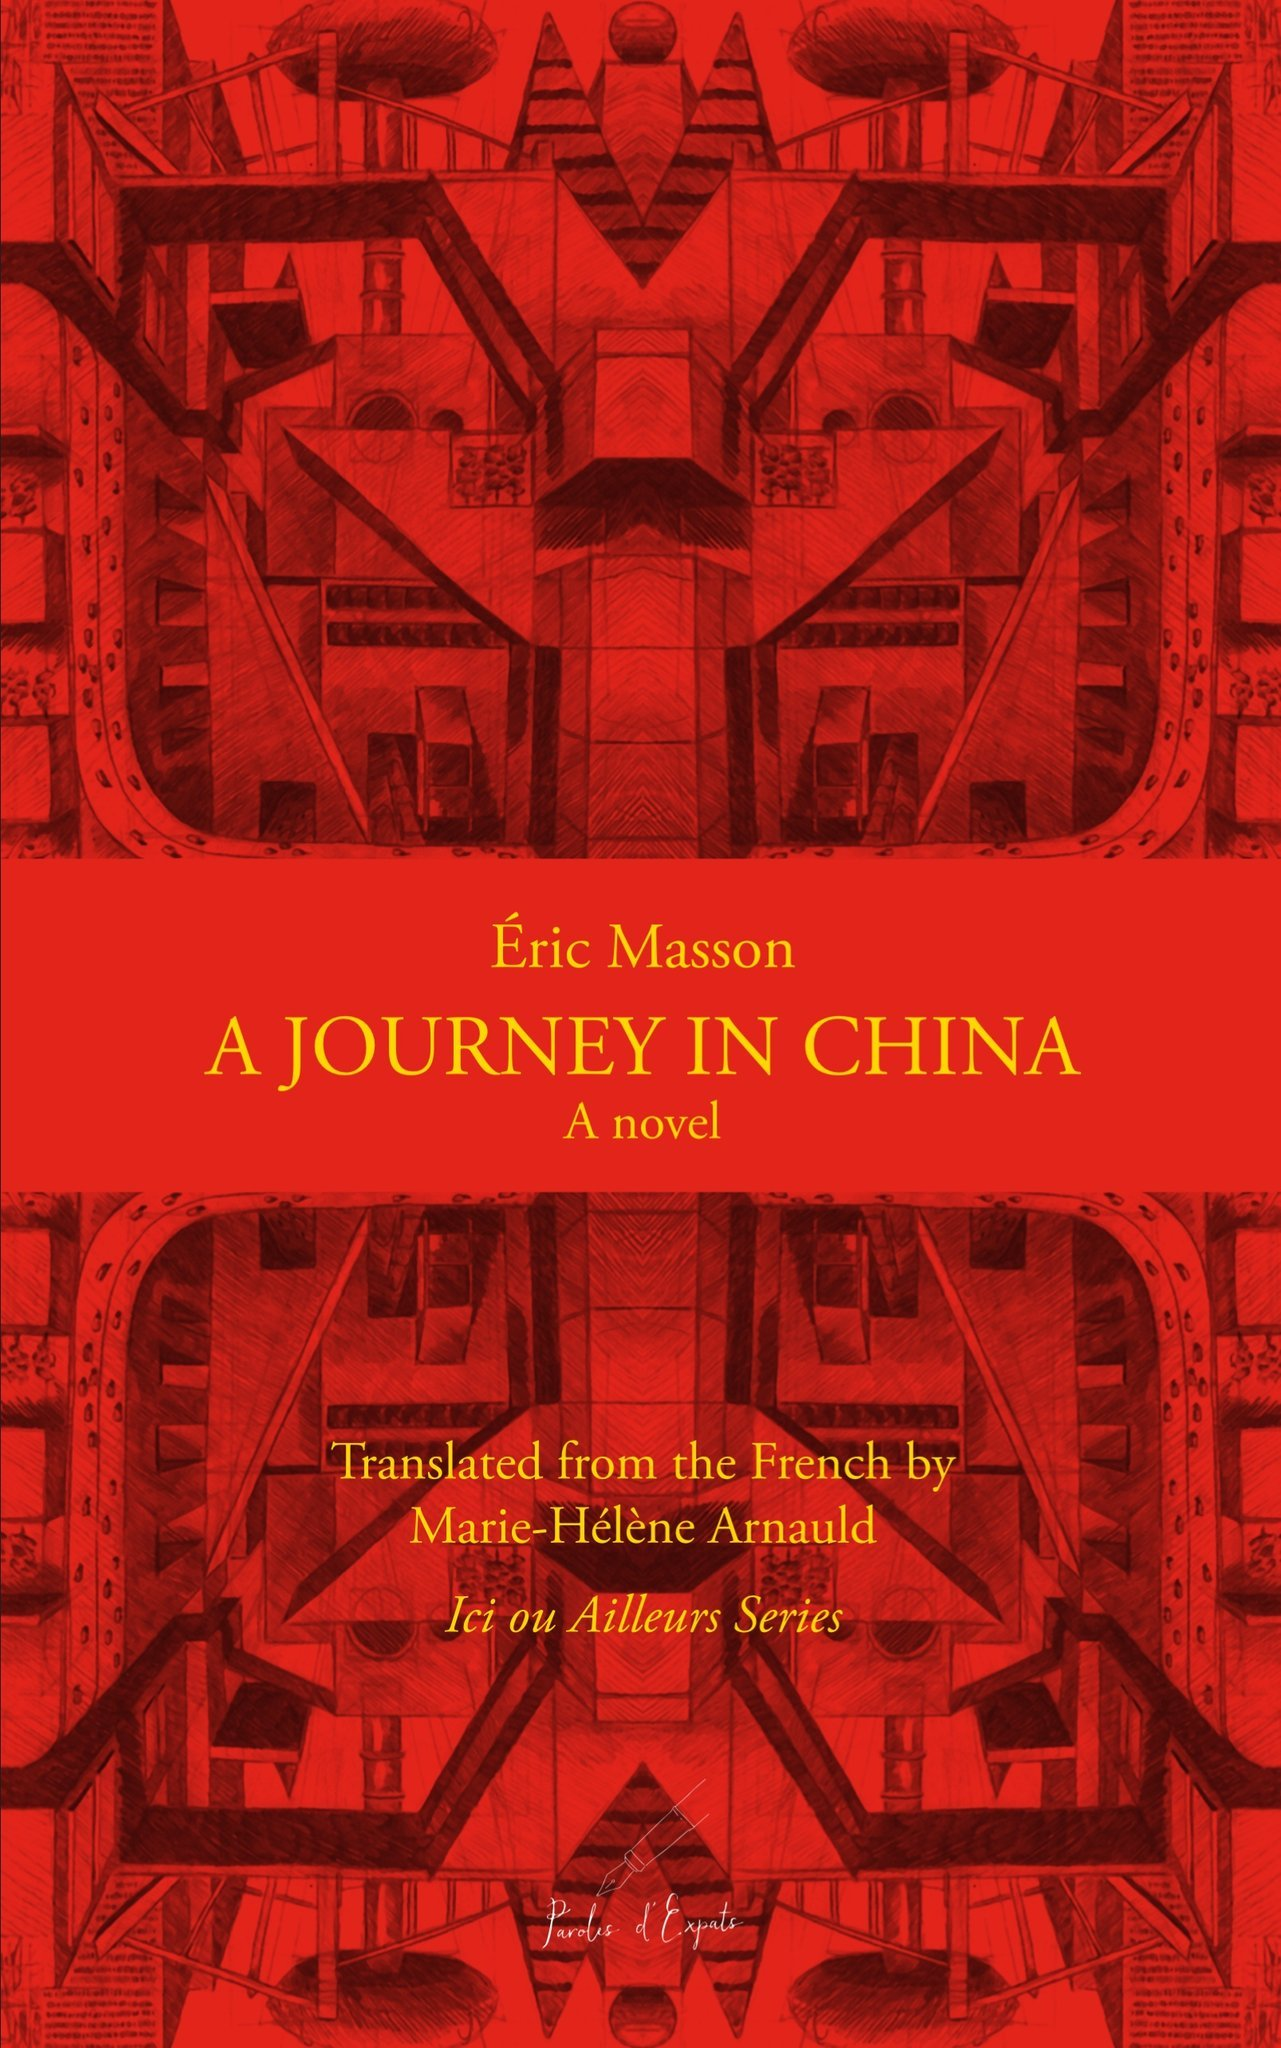 A JOURNEY IN CHINA